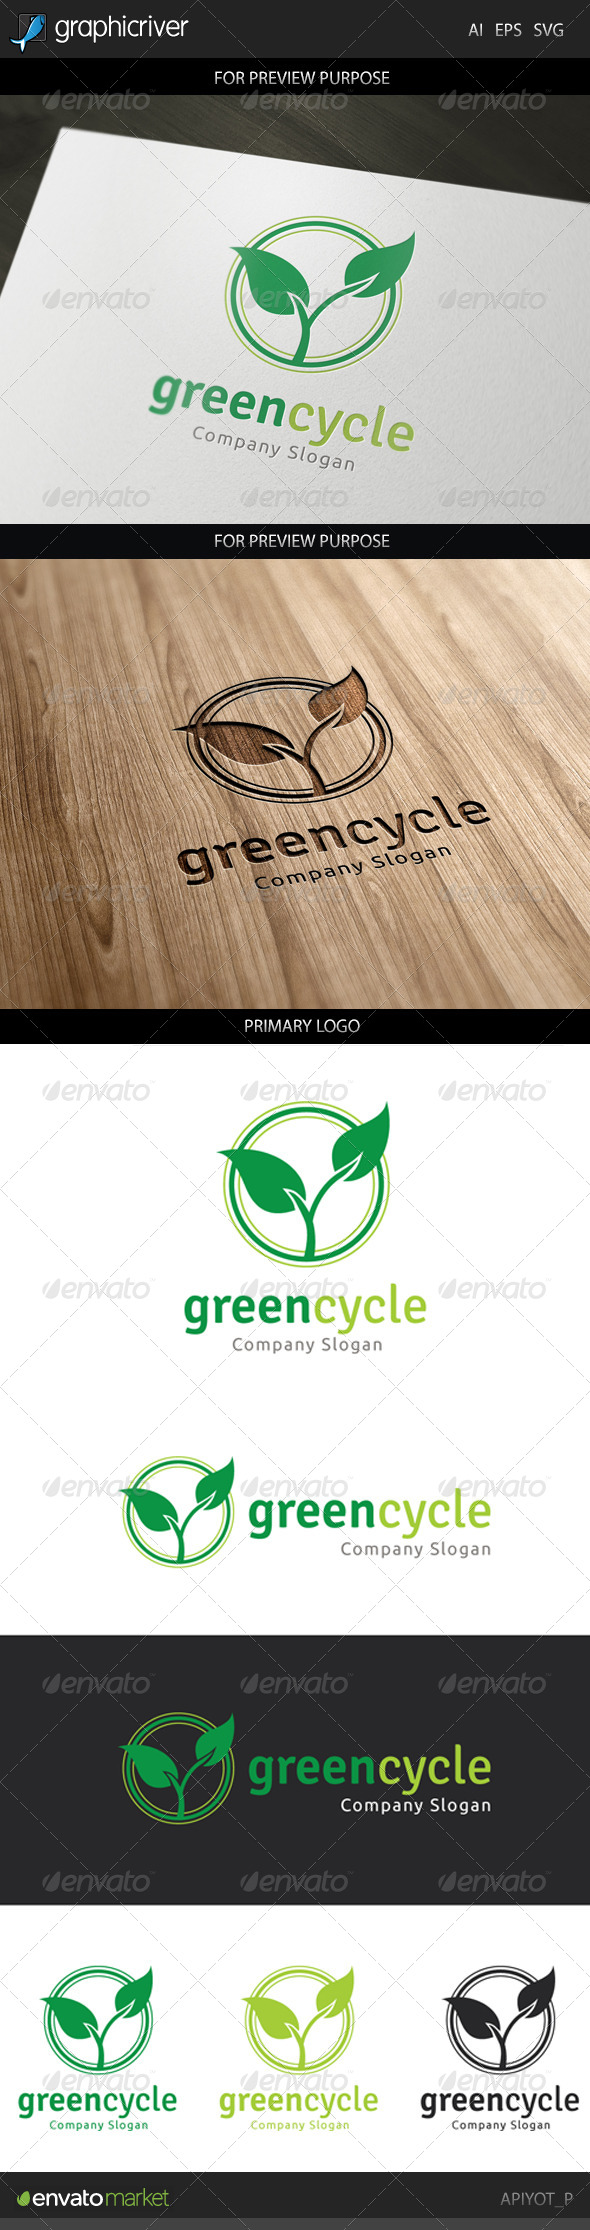 GraphicRiver Green Cycle Logo 8749392